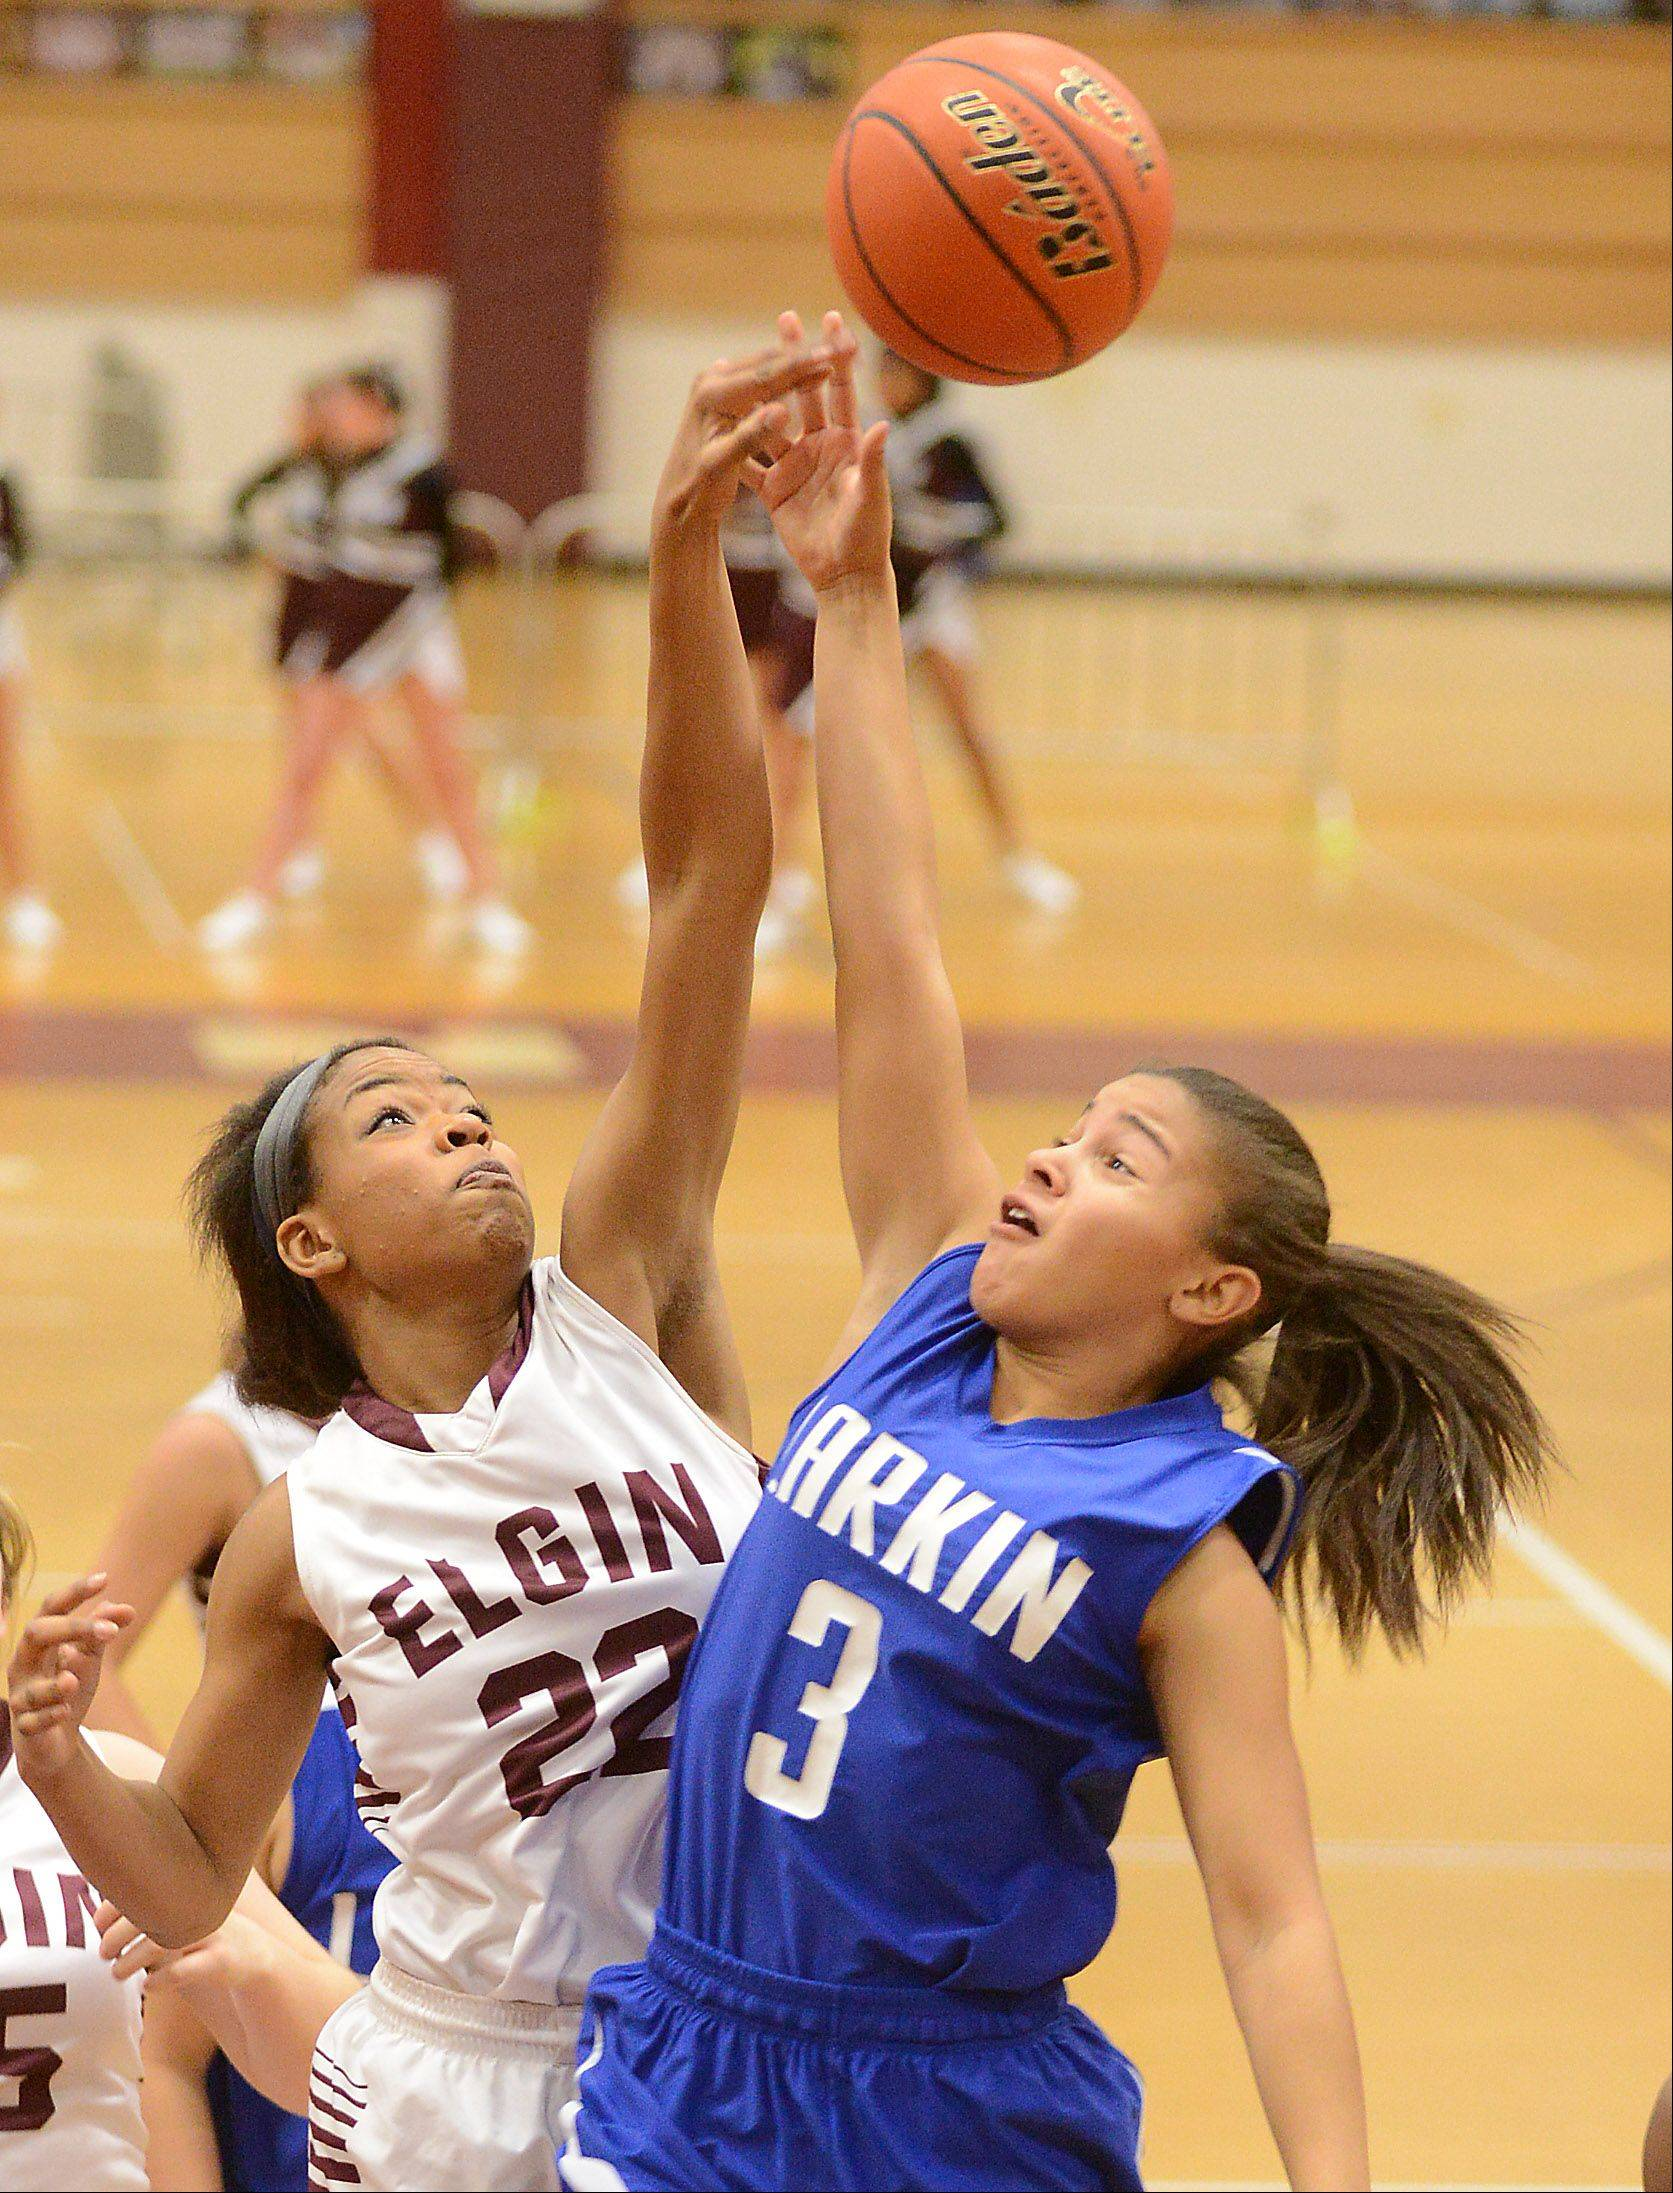 Elgin's Abby Pierre-Louis (22) blocks a shot by Larkin's Marlee Kyles (3) during Friday's game at Elgin.